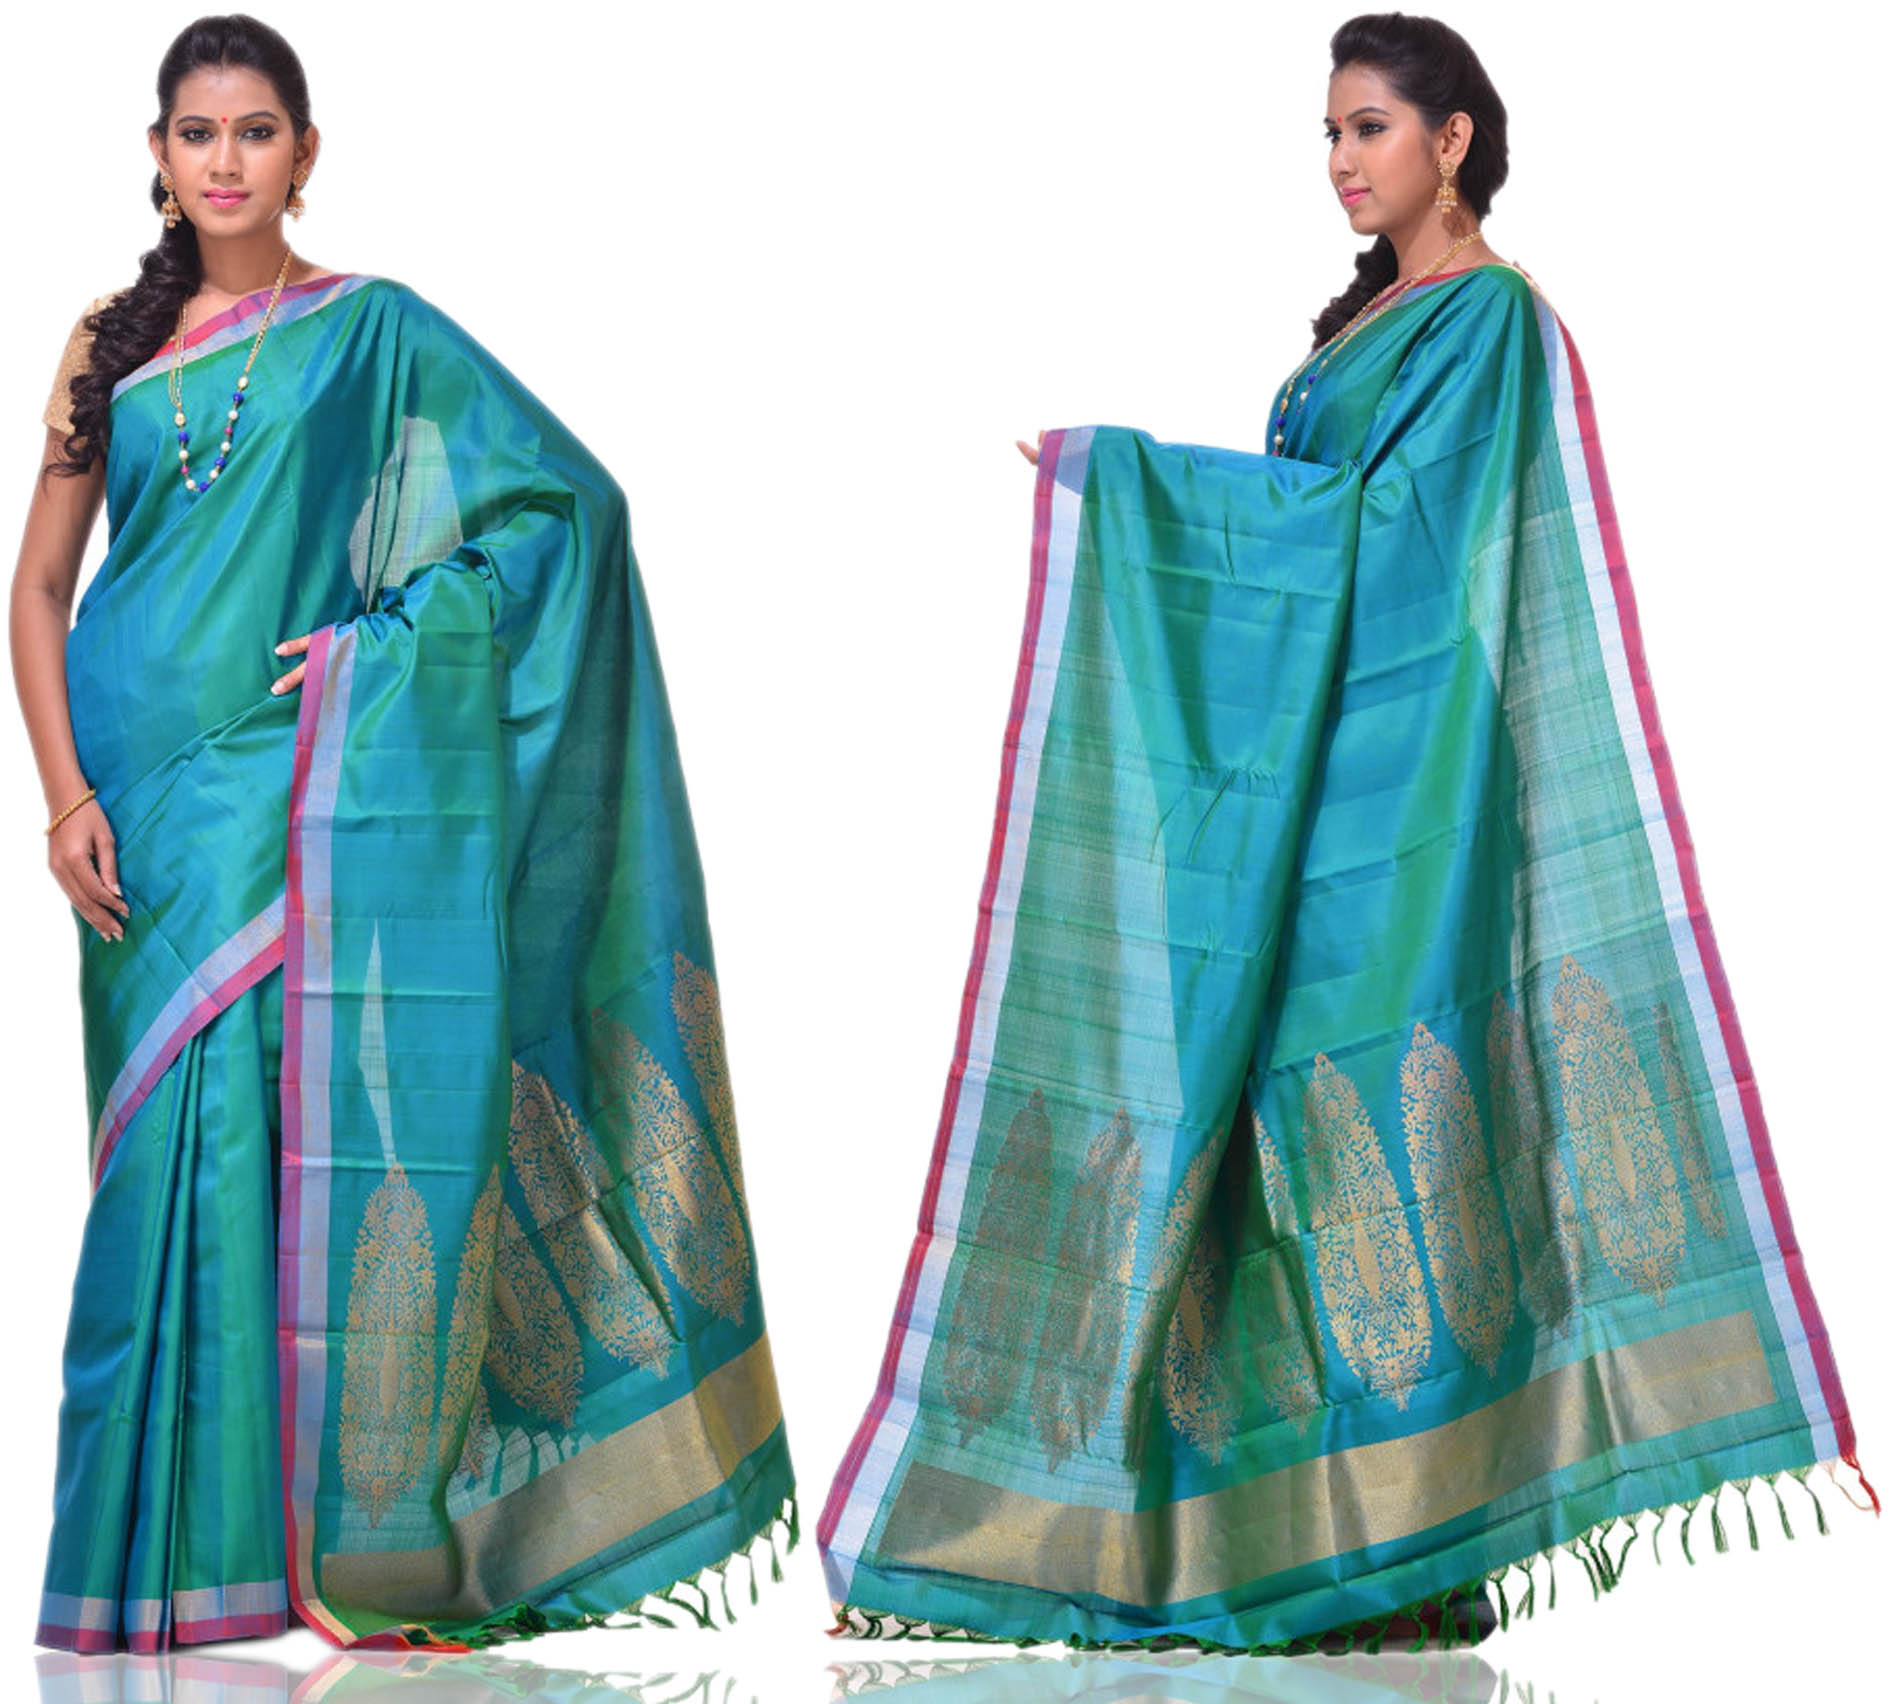 Price: - 8500/-   New Arrivals Arrived kanchipuram Sarees with New Design. These Saree Gives You a Traditional Look of South India. This Saree Worn at Wedding, Parties, Festivals, Functions. Sign up now for E-book you will be updated with latest collection of ethnic verities. For More Info Click on :- www.uppada.com  We manufacture of Uppada sarees, Paithani sarees, Banarasi sarees, Venkatagiri Sarees, Gadwal Sarees, Khadi sarees, Hand Painted Kalamkari Dupatta, Ikkat sarees, Kanchipuram Sarees, Dupattas, Stoles etc. For more info us at 040 64640303, 441905005.  Buy online: - uppada.com - by Paithani, Hyderabad